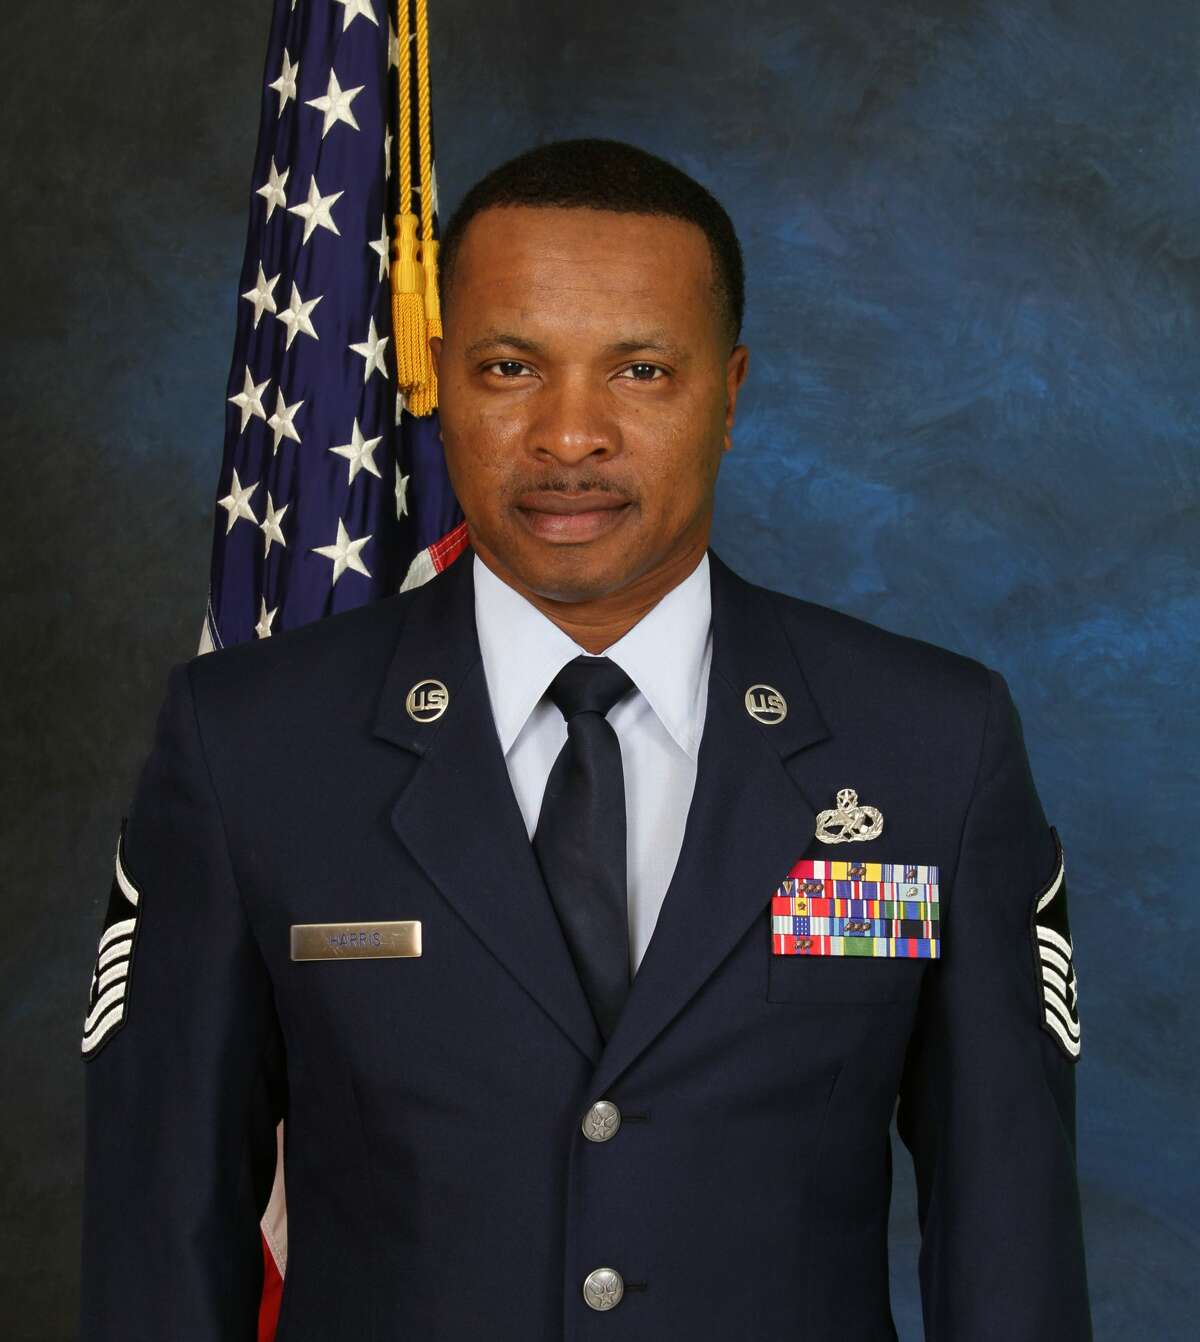 MSgt Darrell Harris served 24 years of active service in the United States Air Force, according to the Brennan High School website.